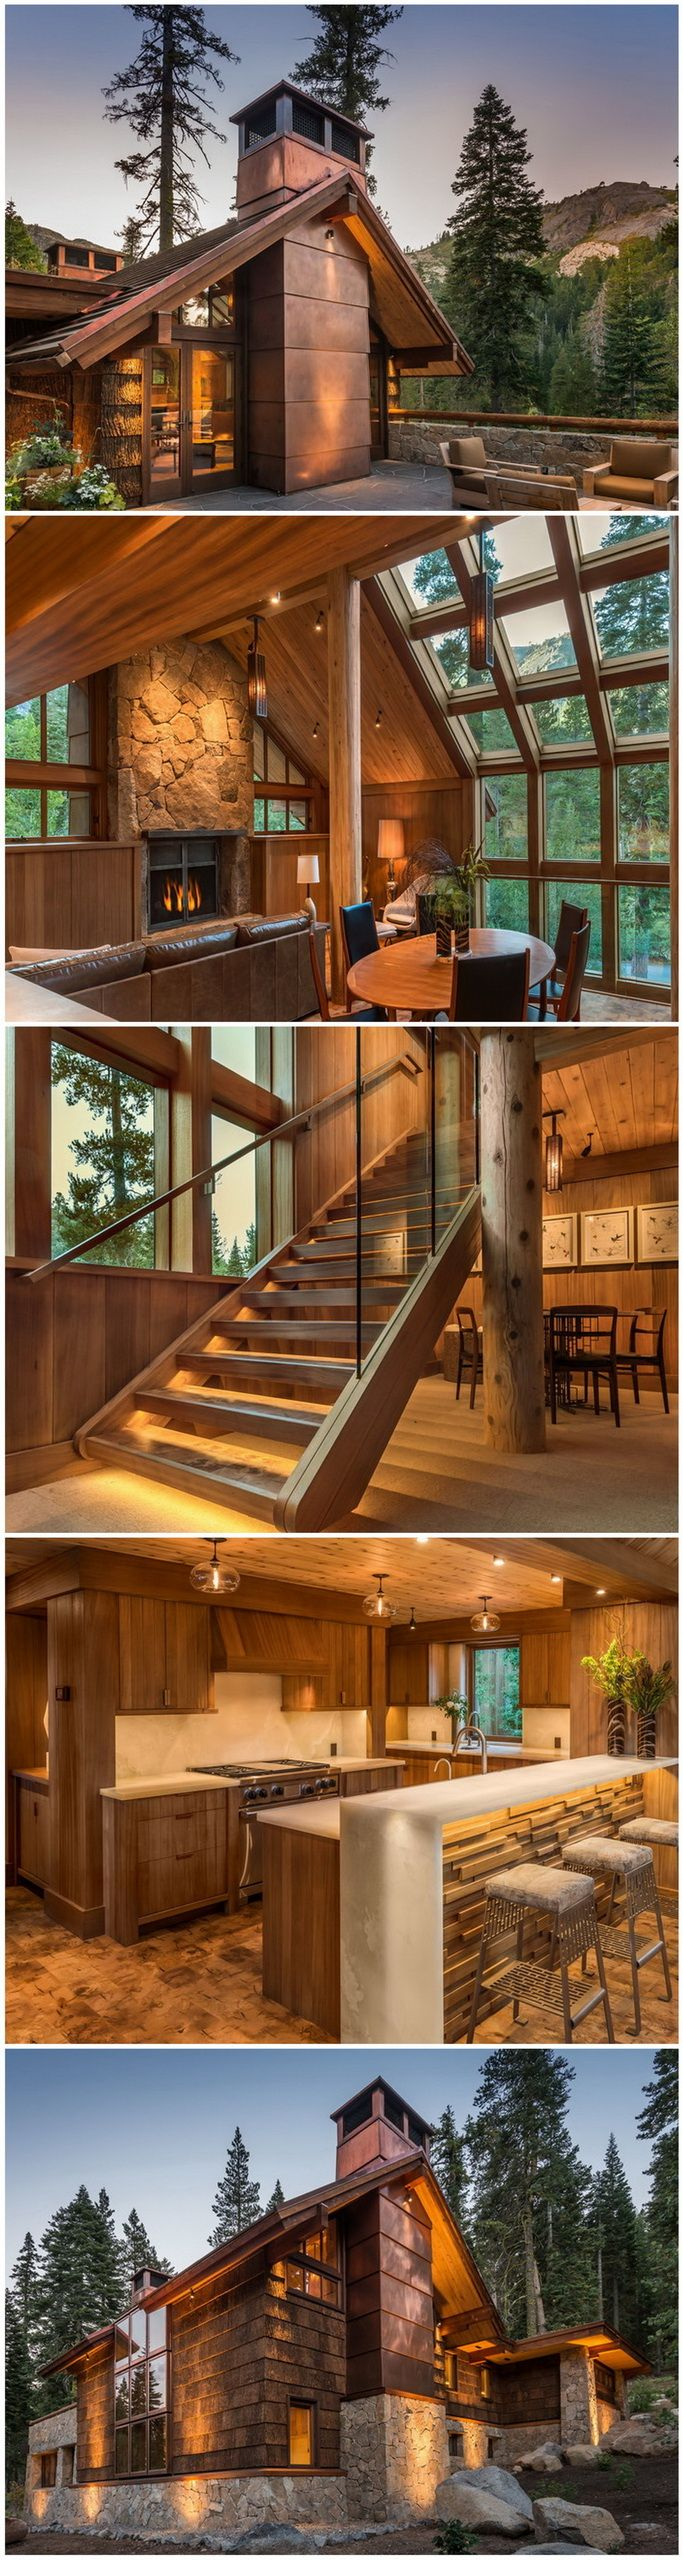 Hazel's Hideaway - Alpine Meadows, CA by OOE Design